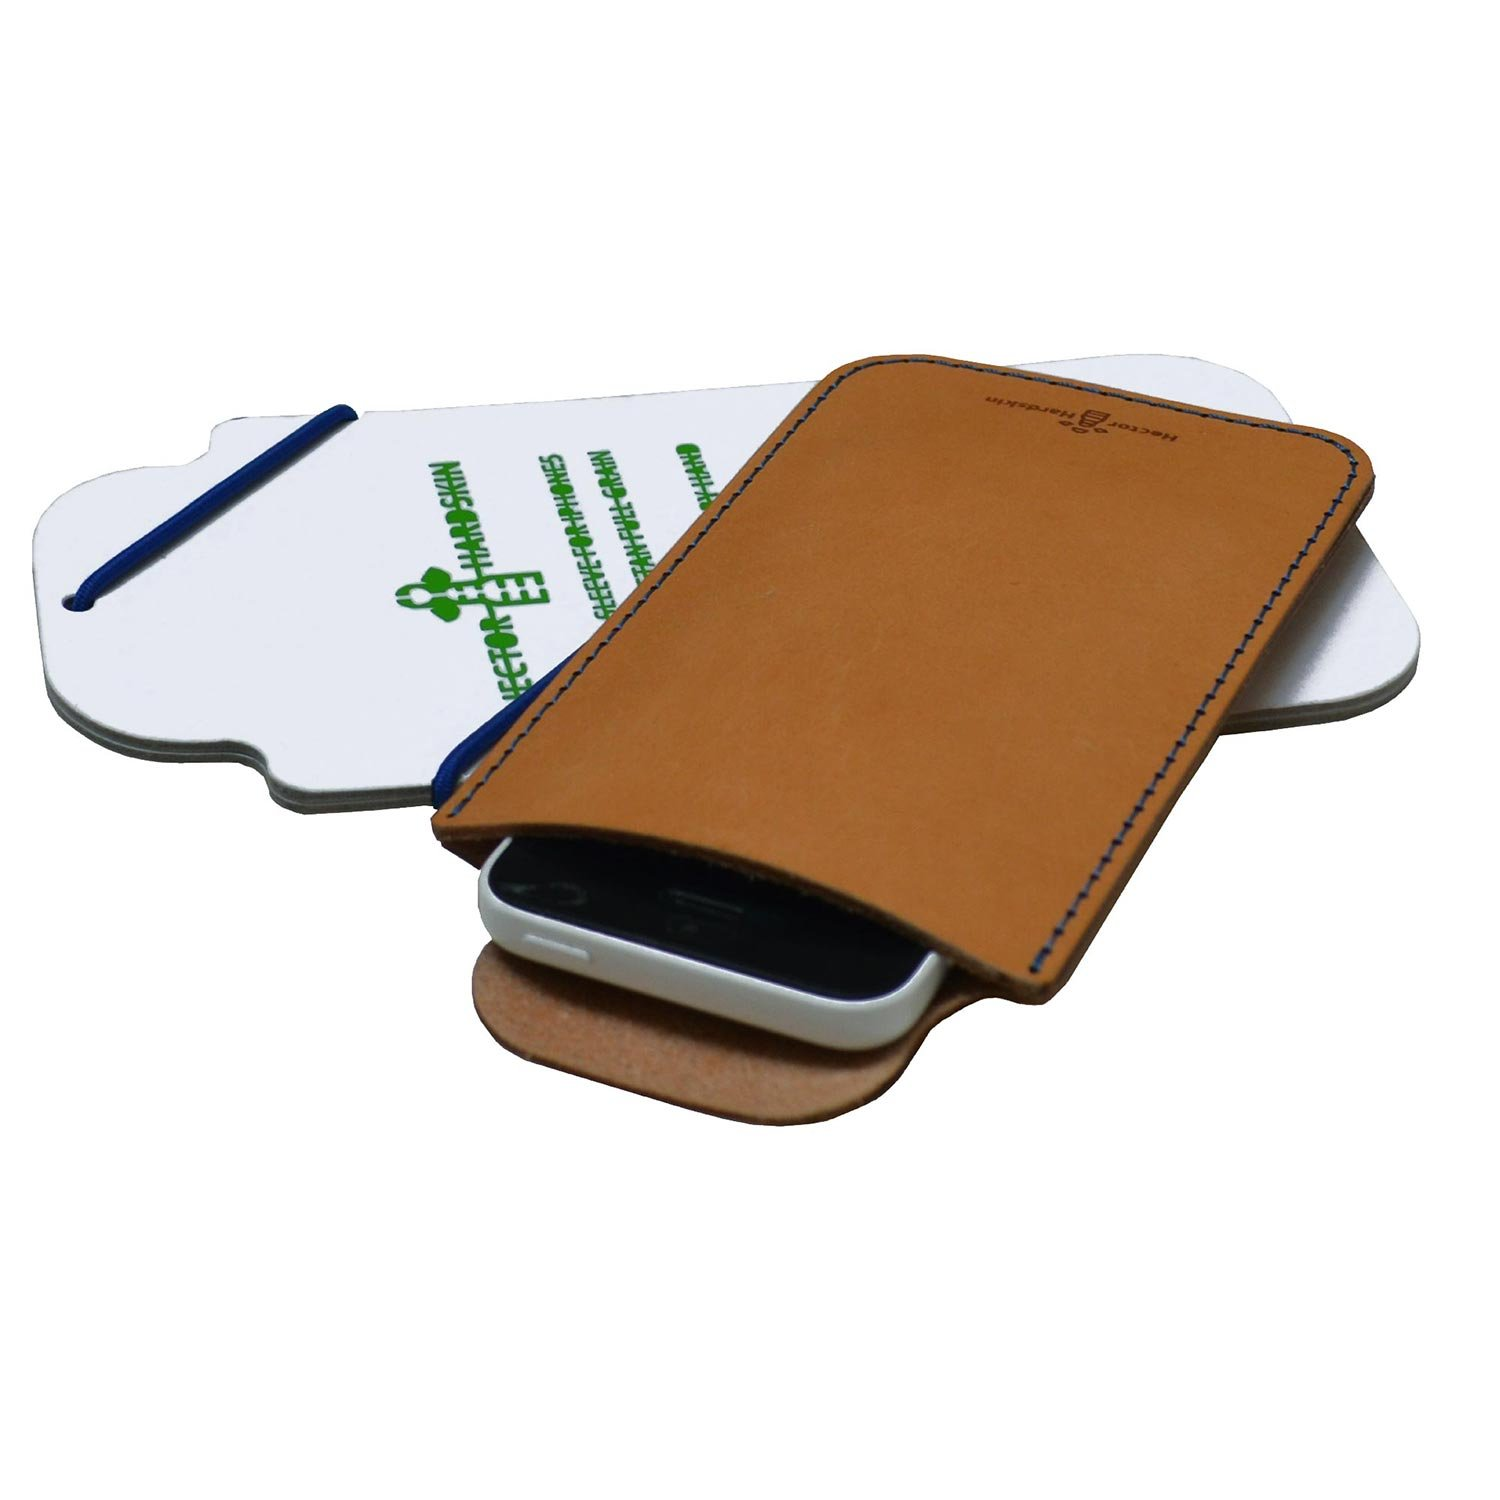 Full grain leather sleeve for iPhone 5/ 5s - Hand stitched